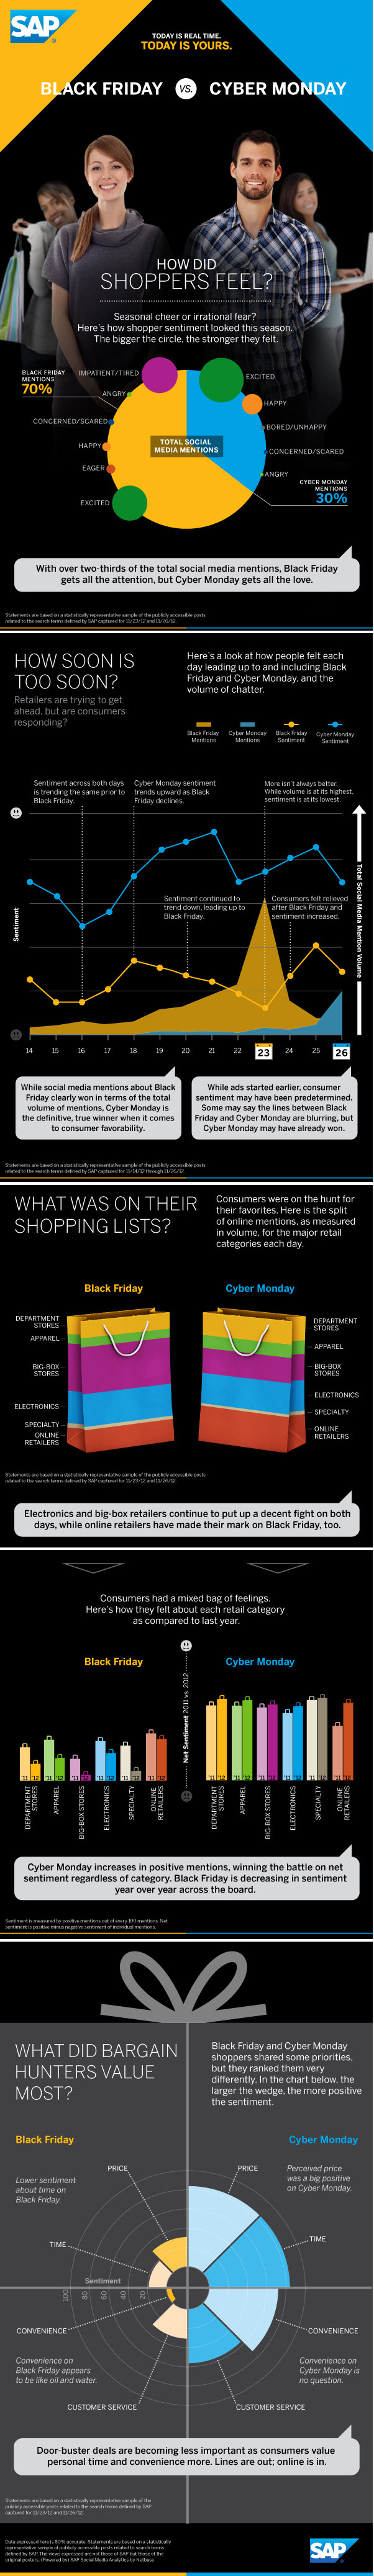 Black Friday vs Cyber Monday